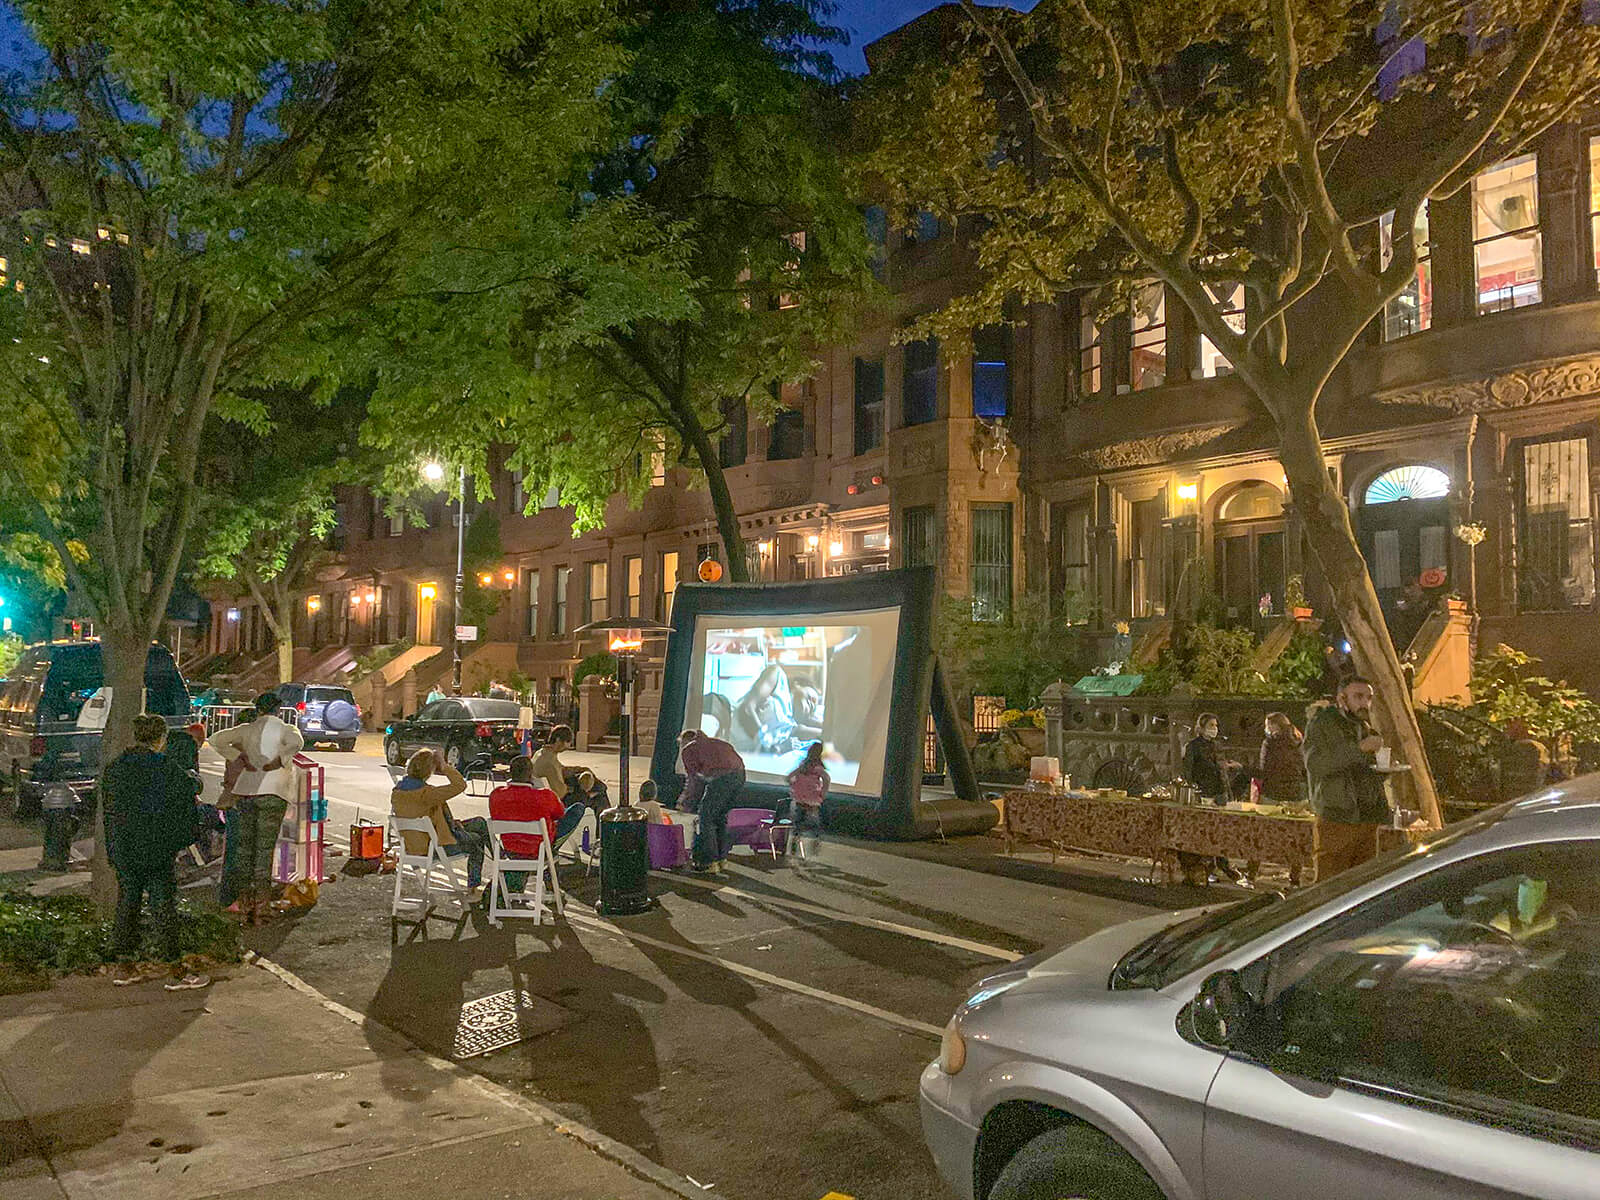 A movie night in a street in New York City.